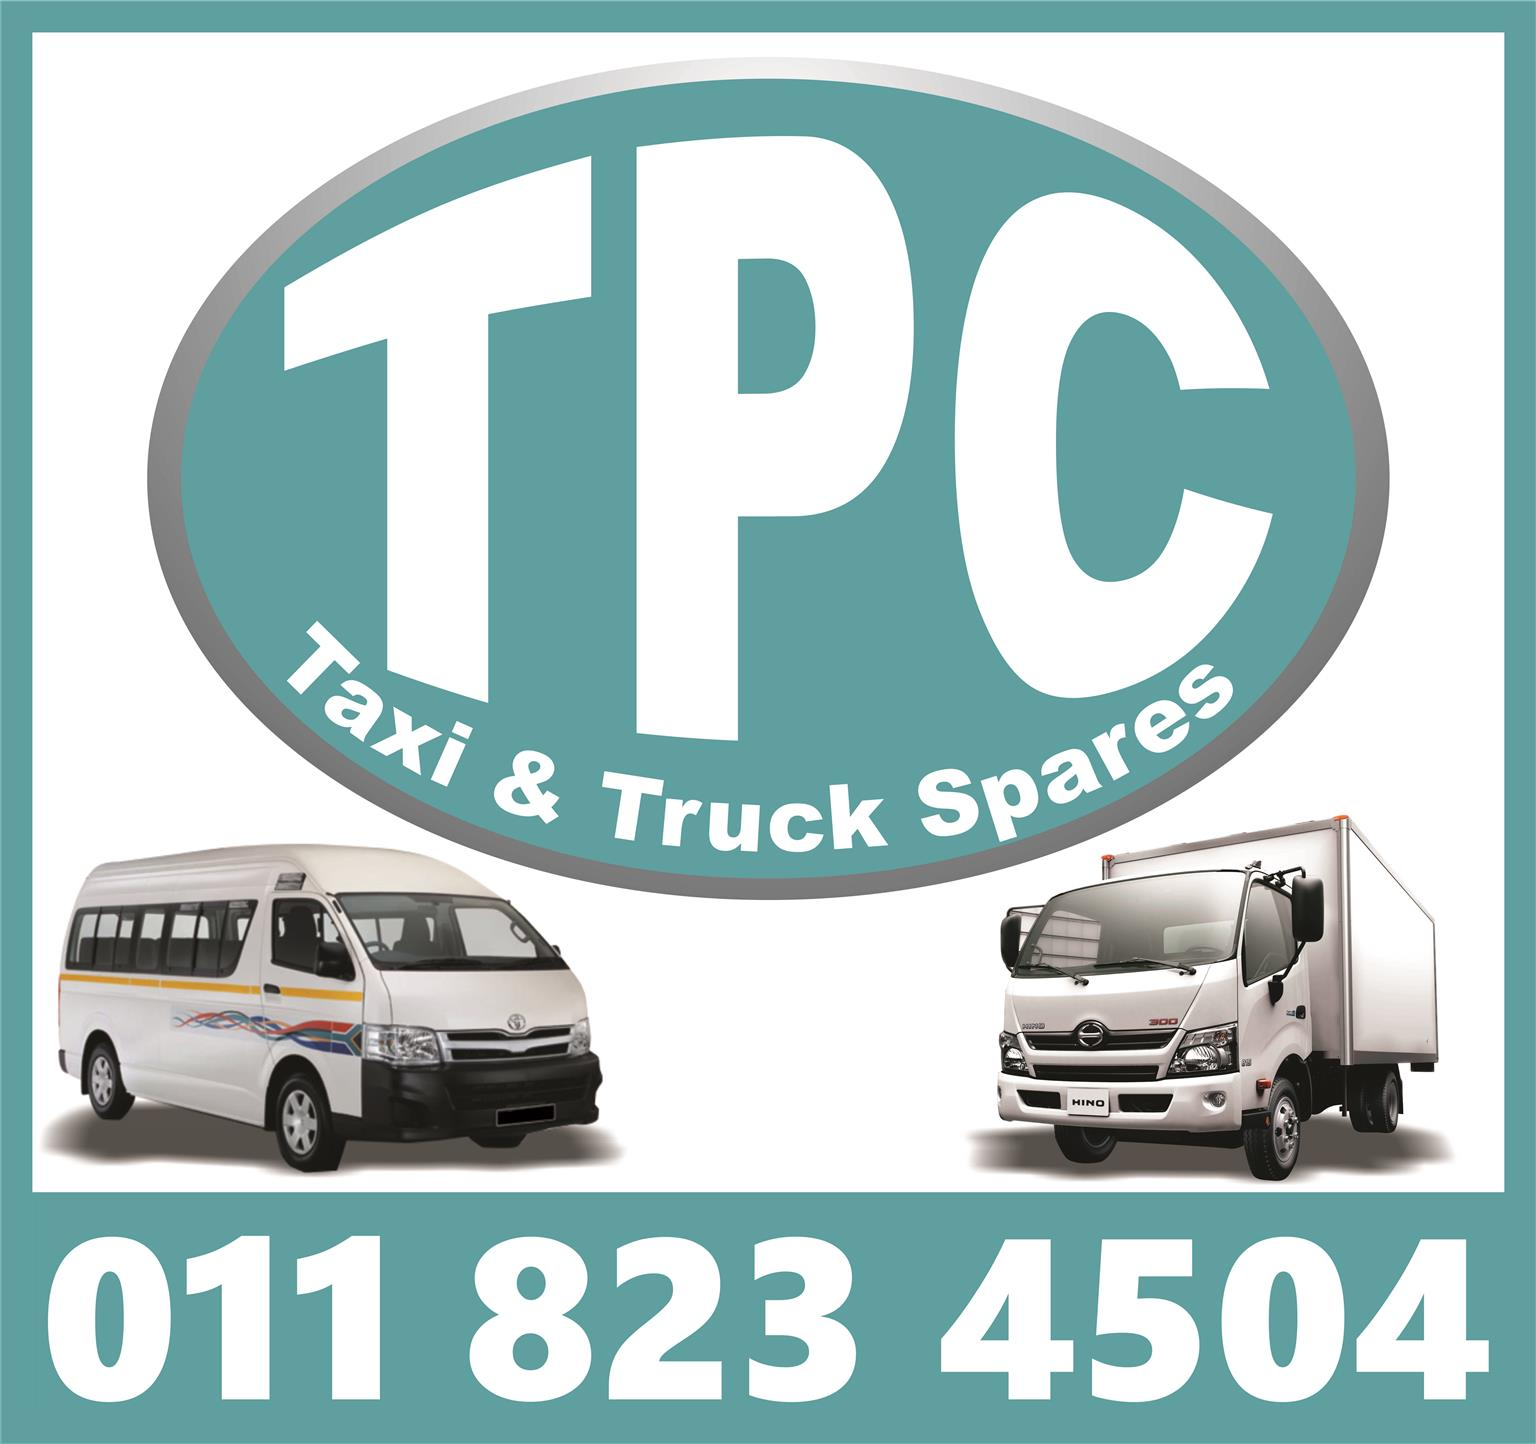 Visit TPC For All Your Various New And Used Taxi Replacement Parts - Engines, Gearboxes, Diff, Body Parts And More!